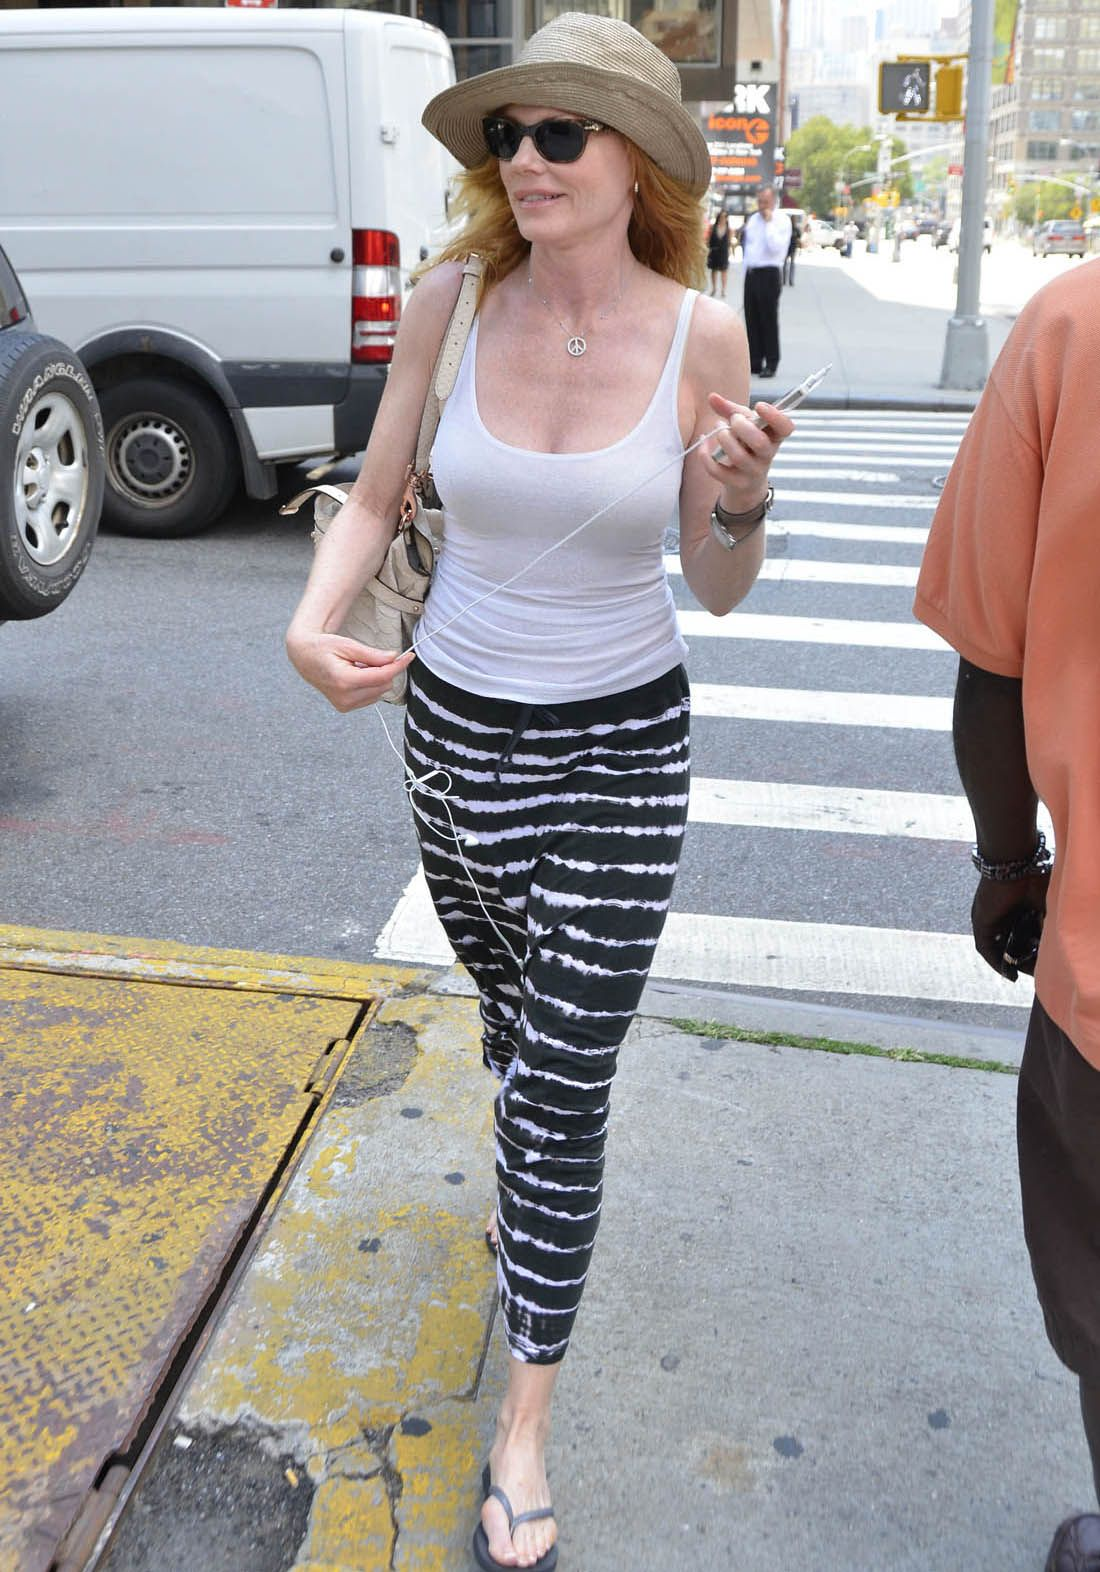 Awesome Hot Celebrities In Bikini Marg Helgenberger Fills Out A Tank Top 9 Hi Resolution Images In Gallery